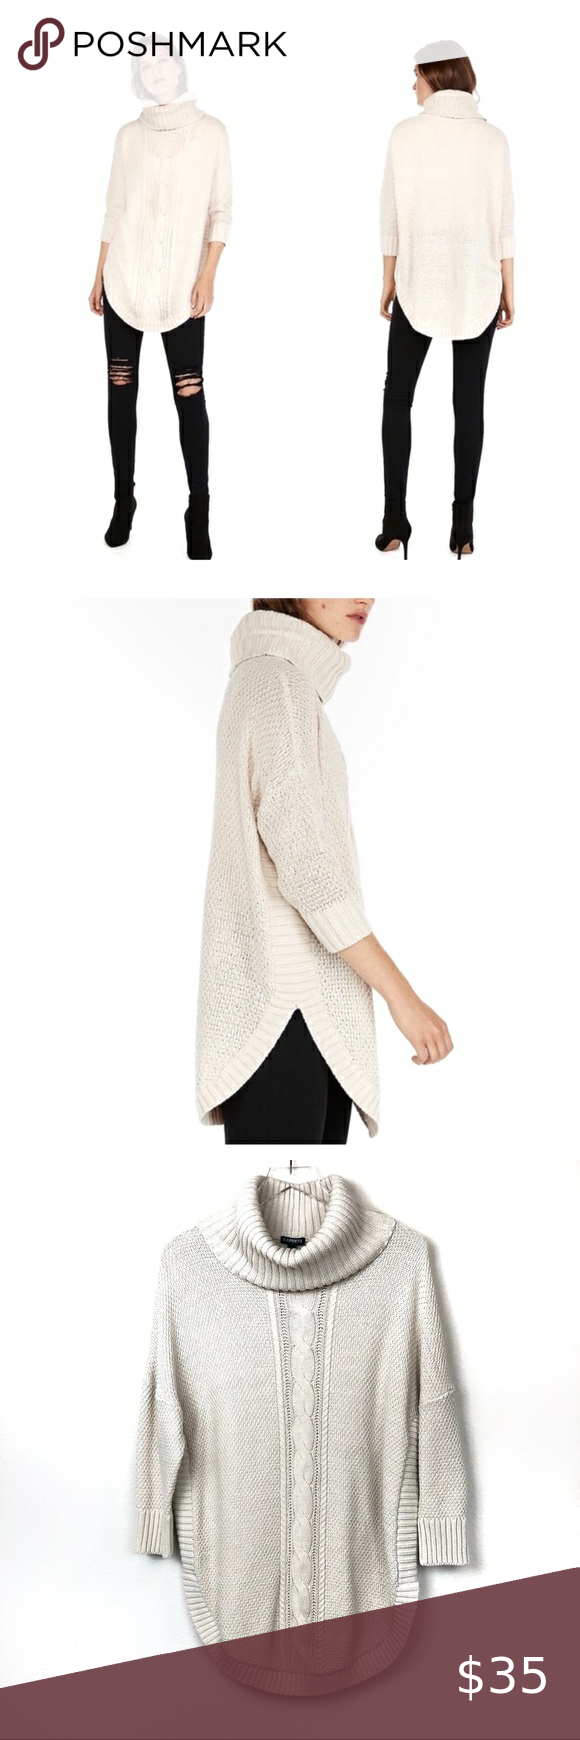 Express Cowl Neck Cable Knit Sweater Nwt Nwt In 2020 Cable Knit Sweaters